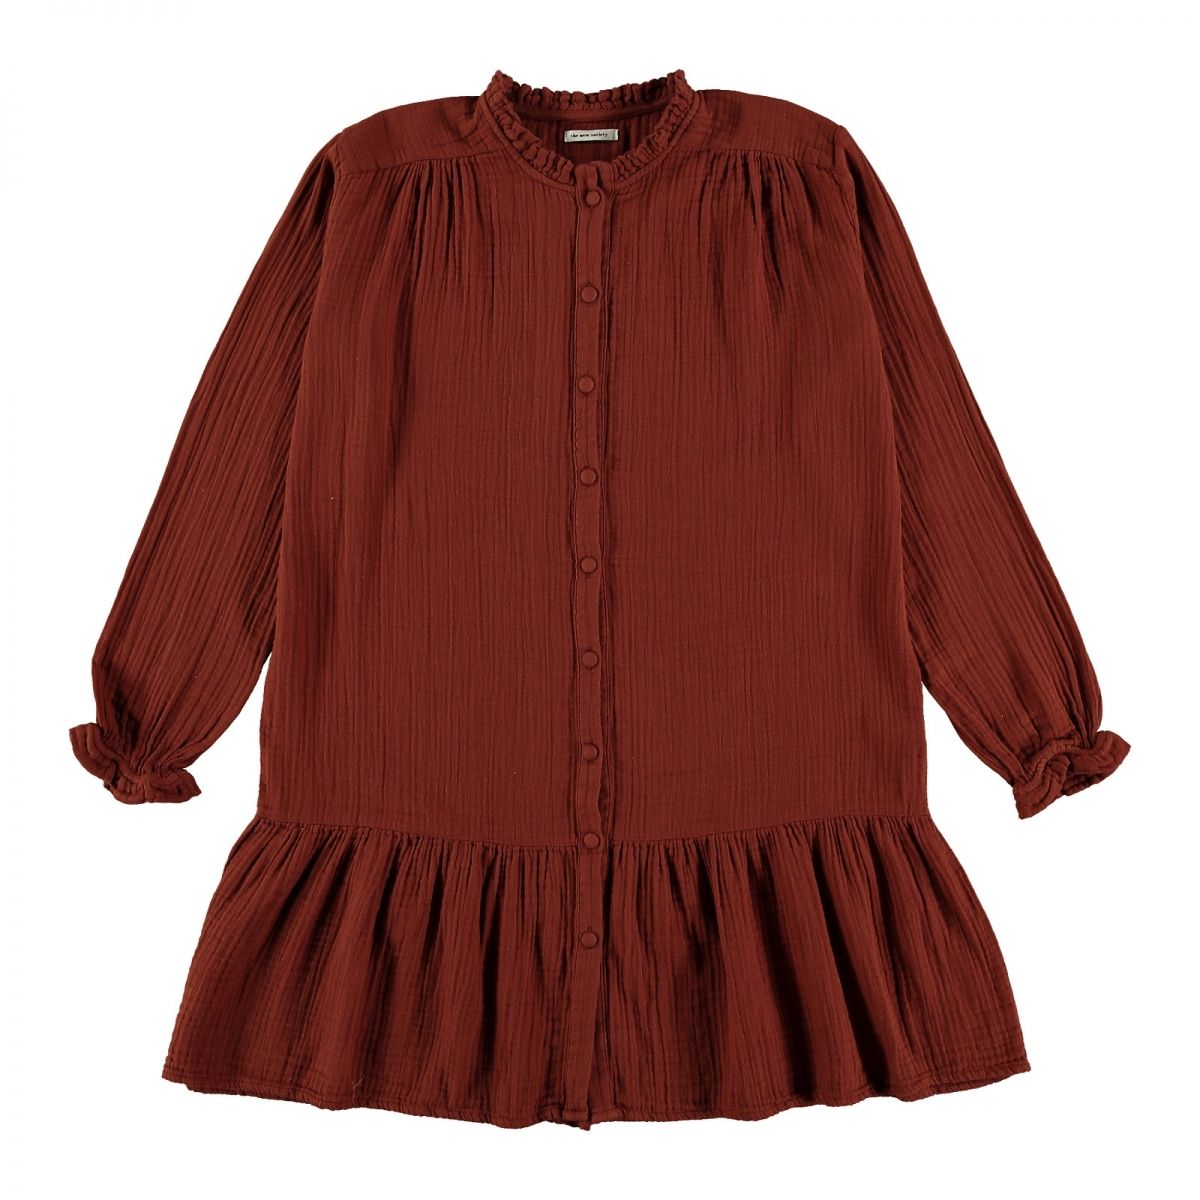 The New Society Dress Lúa Winter Bambula brown